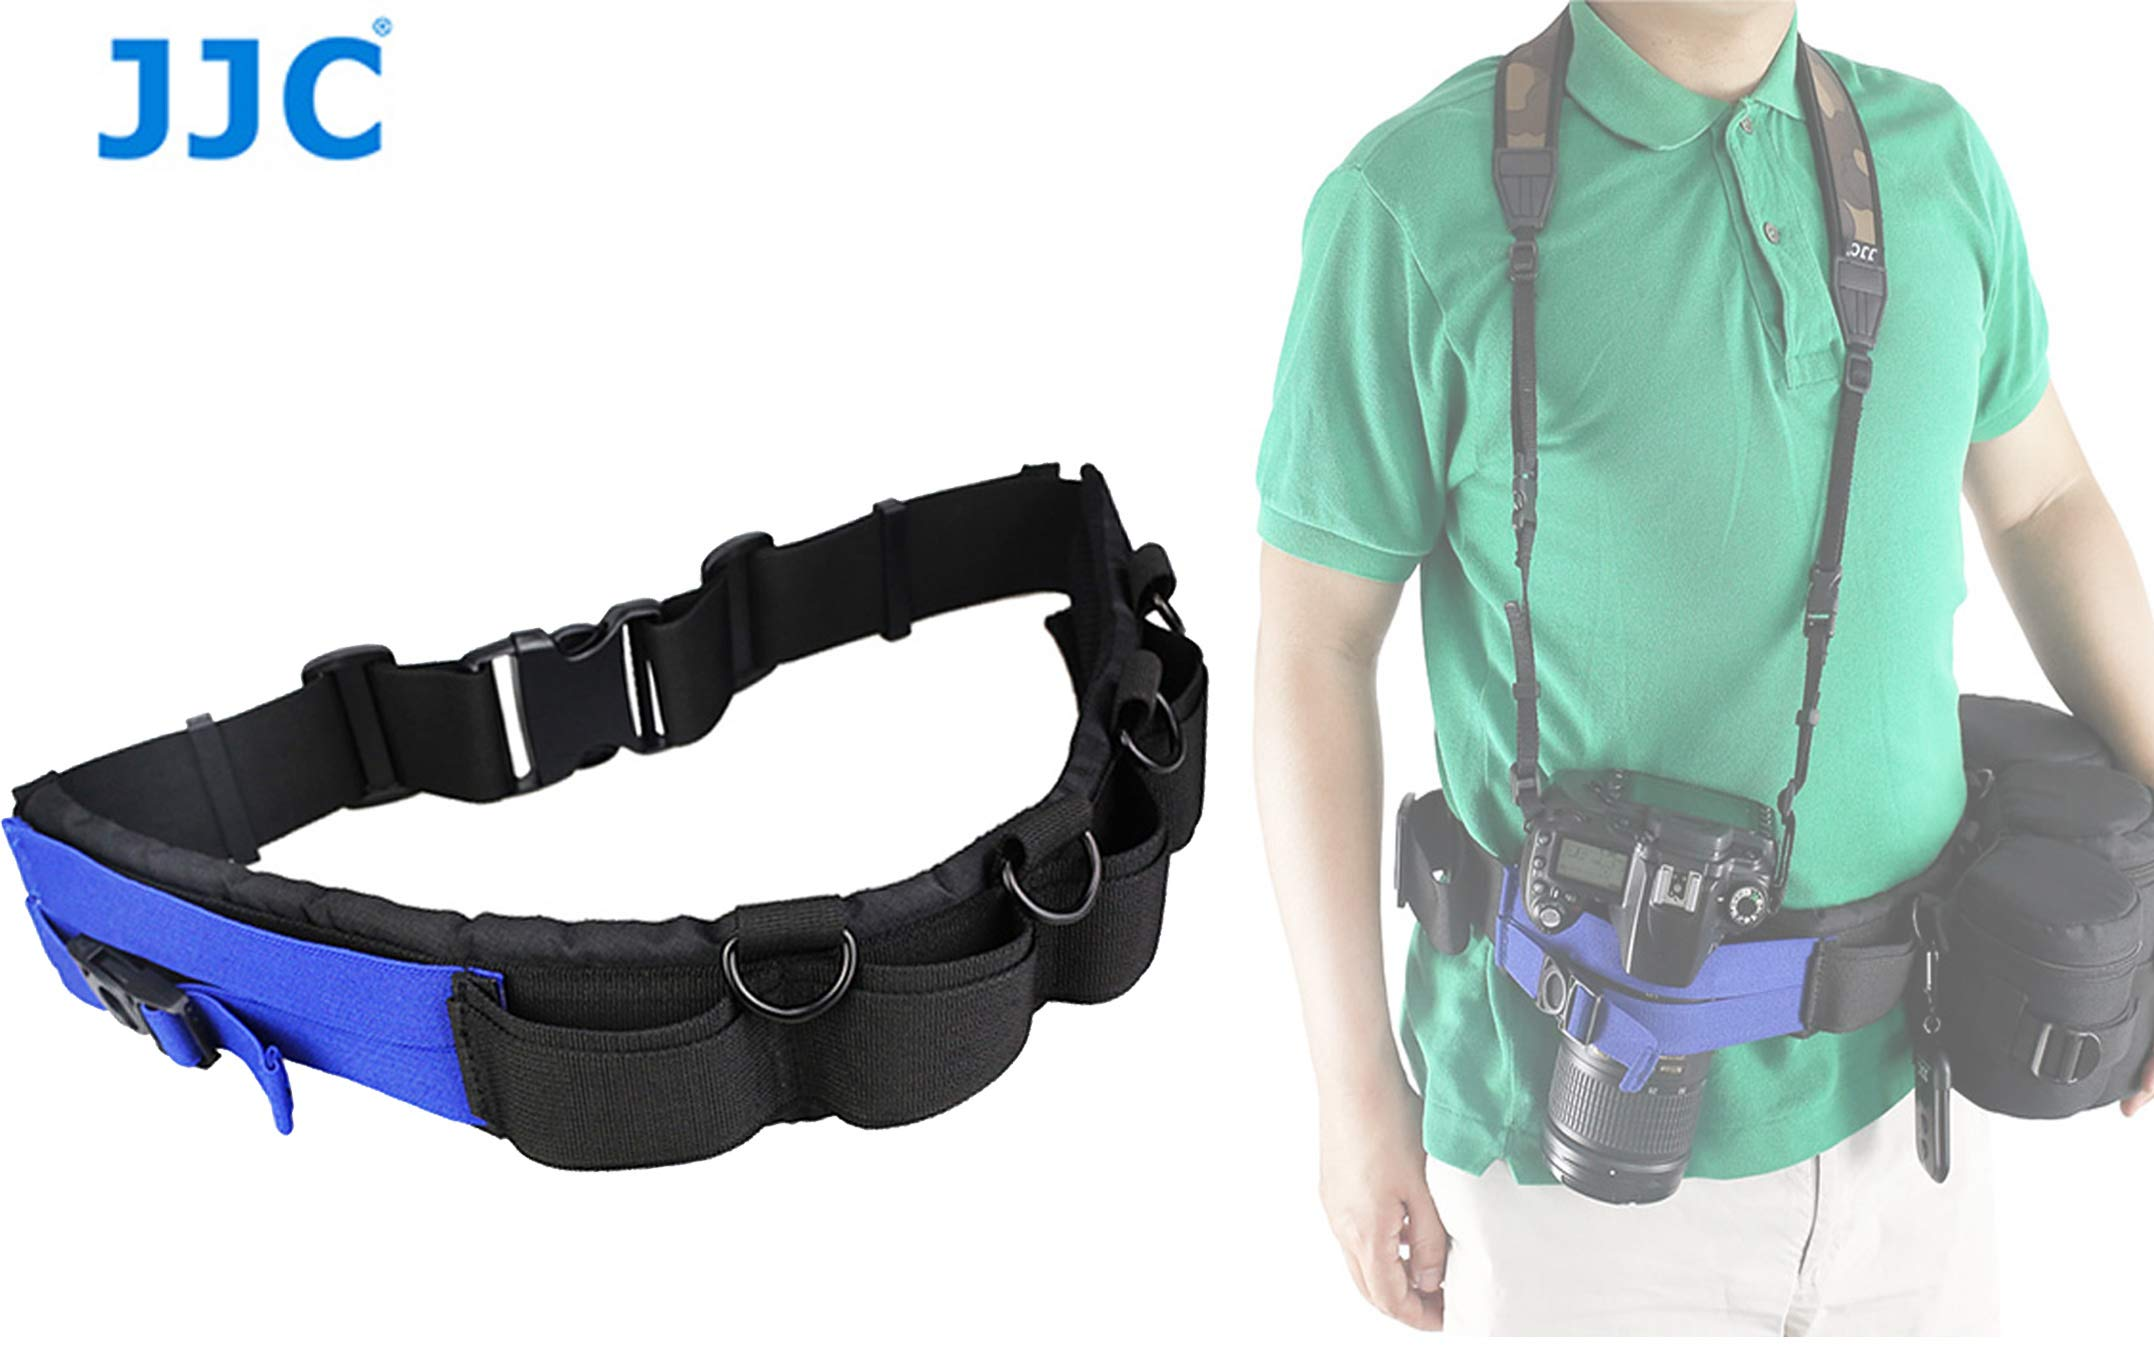 JJC GB-1 Adjustable Photography Utility Belt, Wrist Waistband Belt, Accessory Belt, Speed Belt, for Carrying Gear Bag Case, Lens Pouch, Flash Accessories, Belt Components, D-Rings, Breathable 3D Mesh by Fotasy